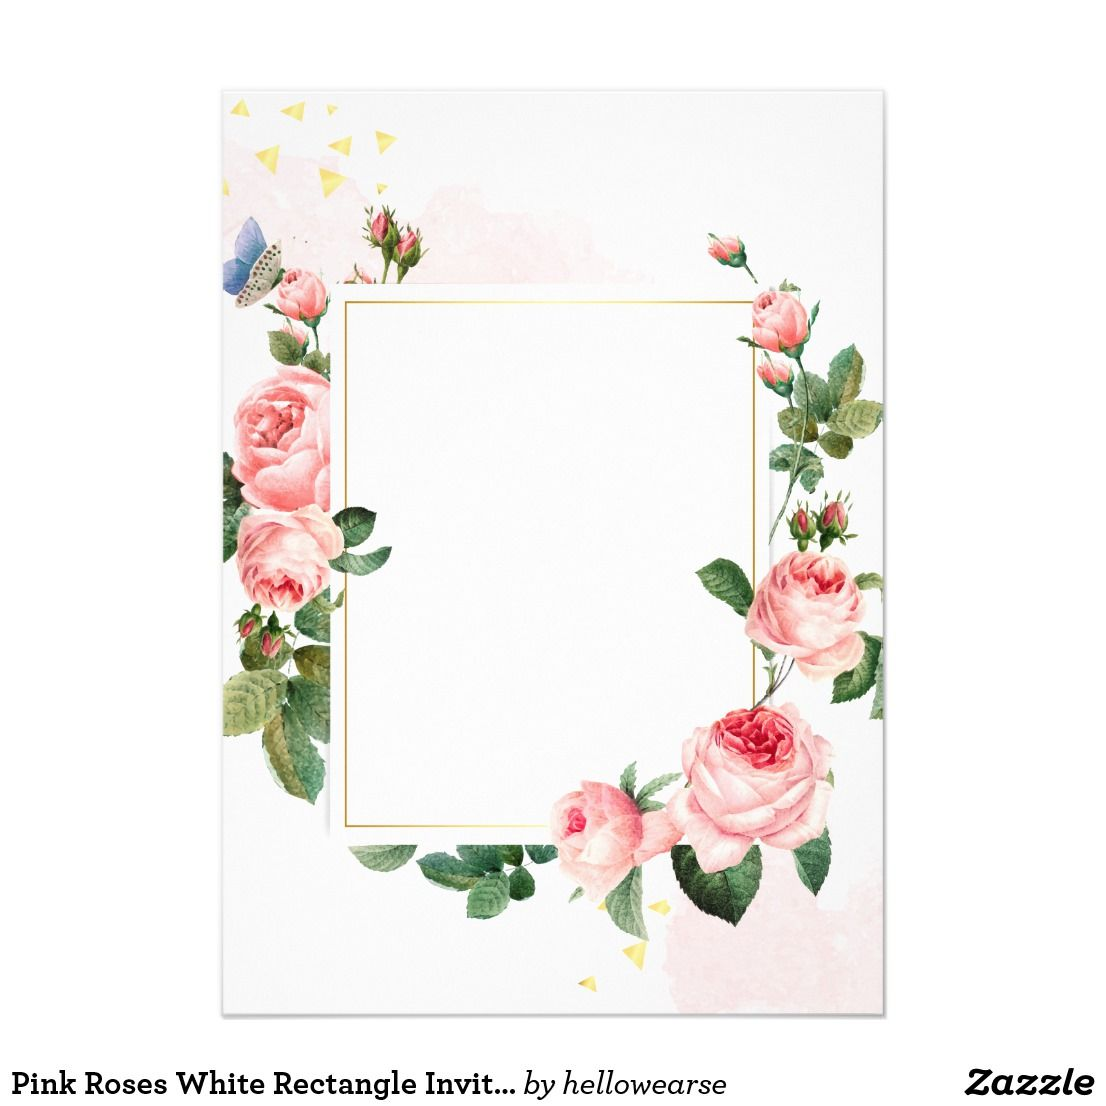 Pink Roses White Rectangle Invitation Card Zazzle Com Pink Invitations Pink Roses Invitation Card Party